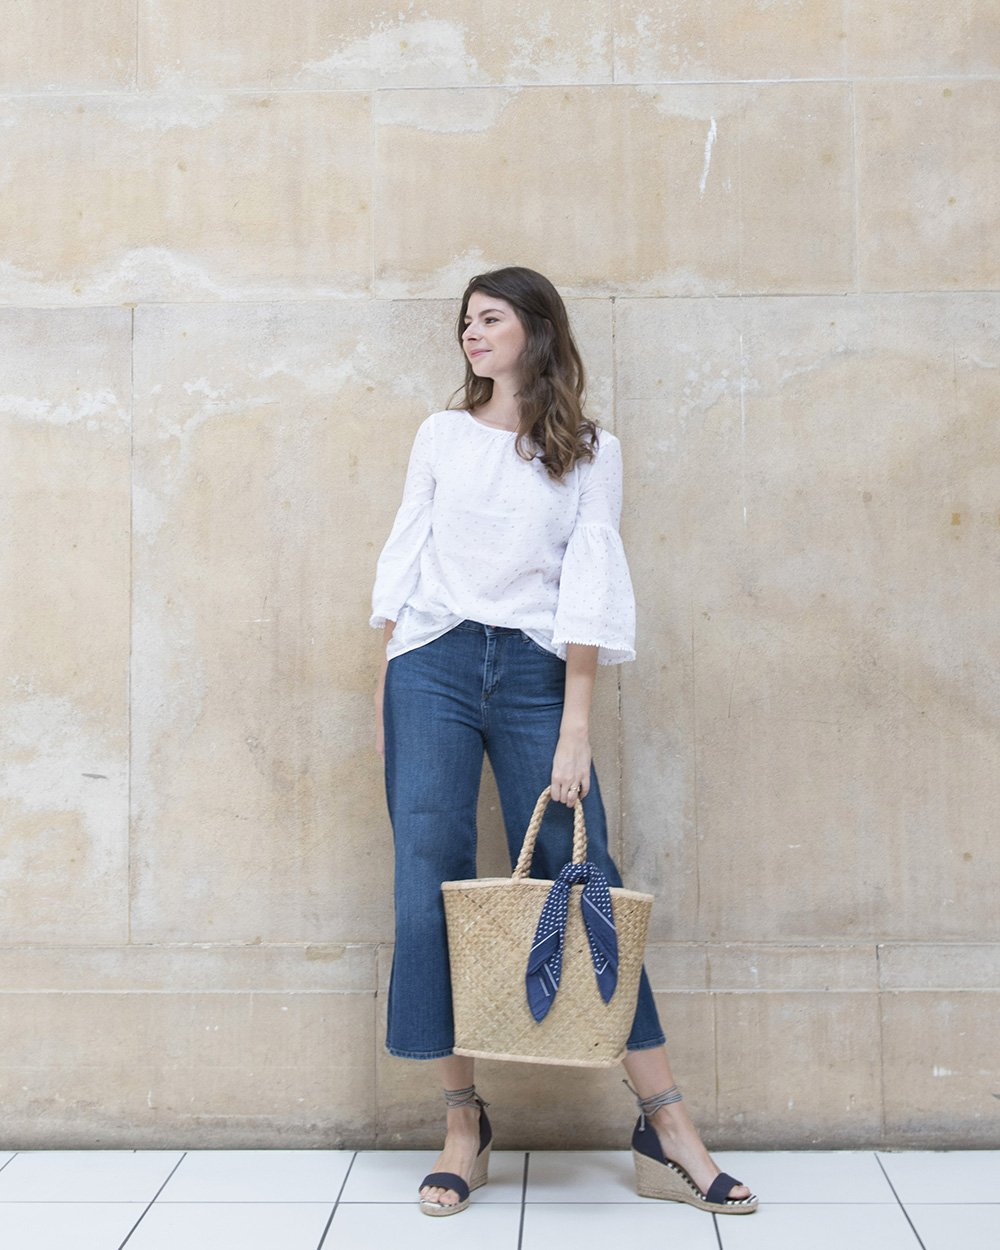 Stylist Nancy Straughan posing against a concrete wall wearing white top and blue jeans, holding a basket bag